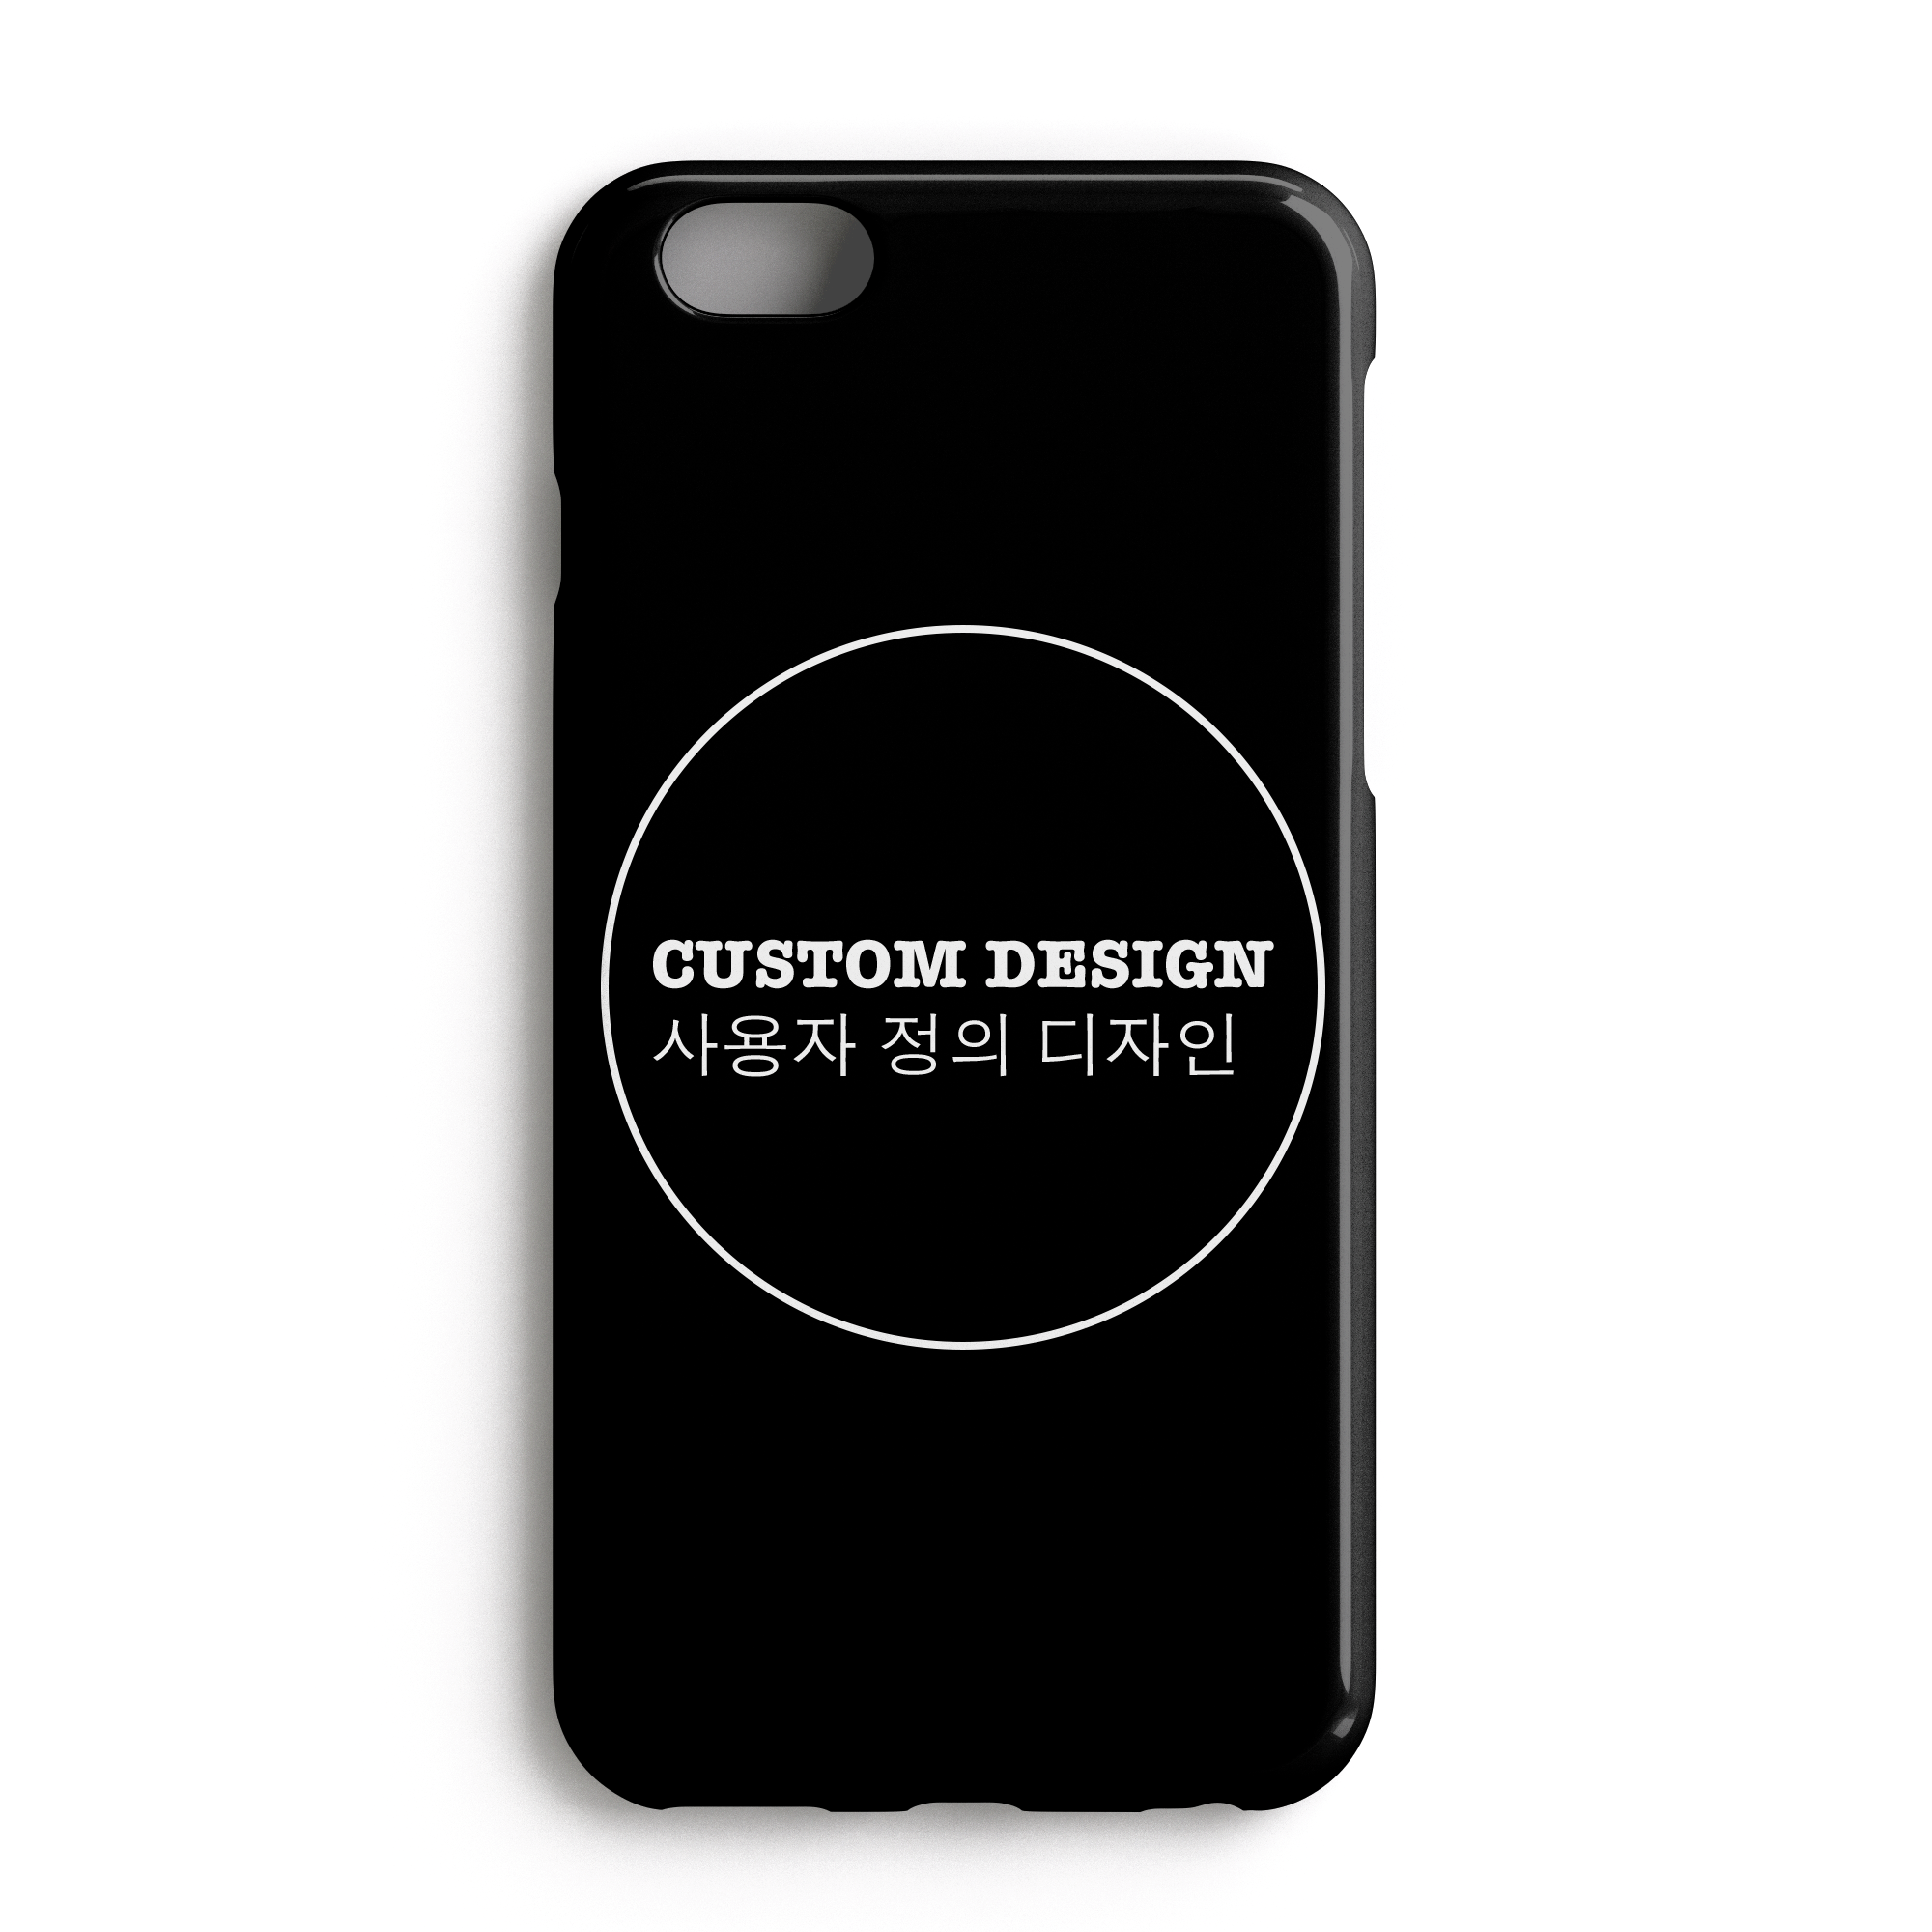 kpop phone cases for samsung galaxy s6